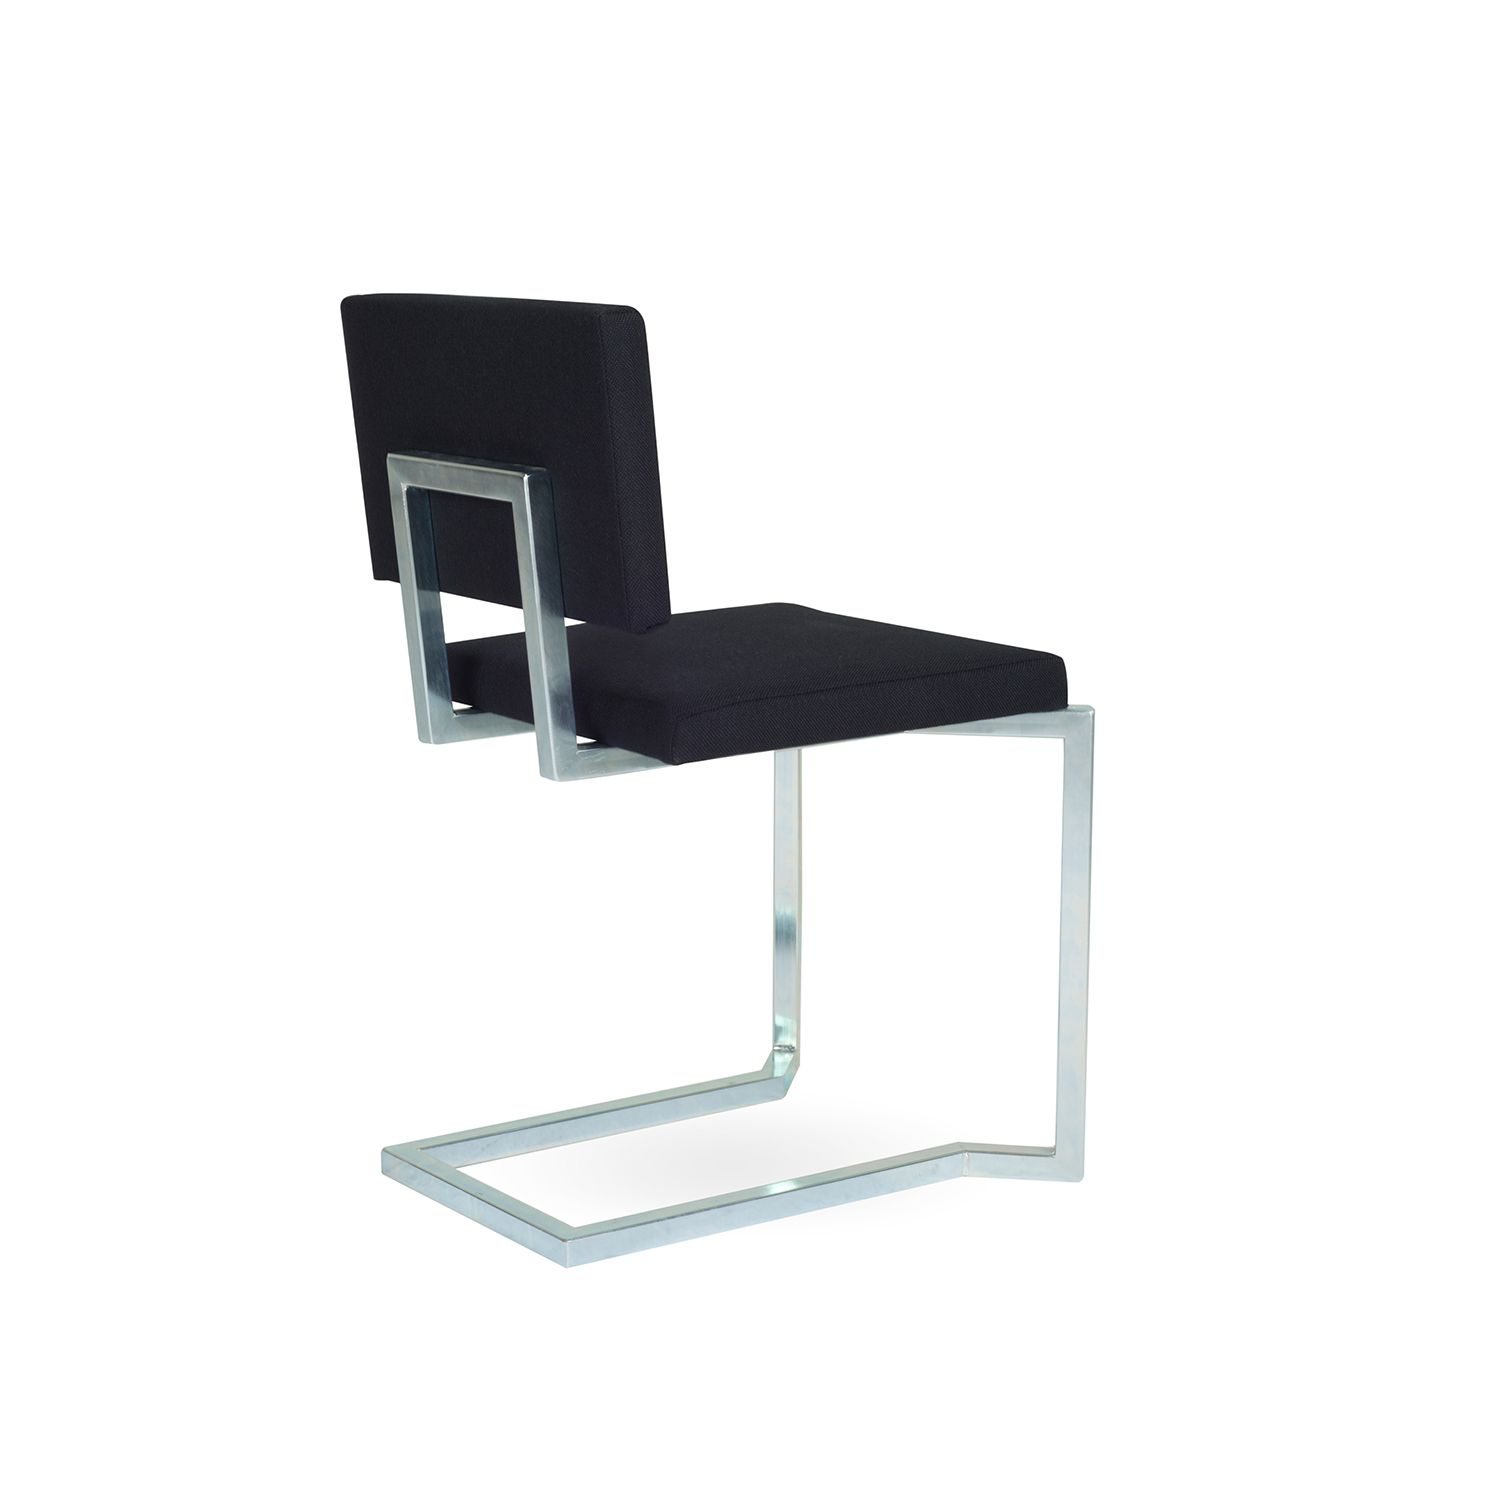 avl koker chair